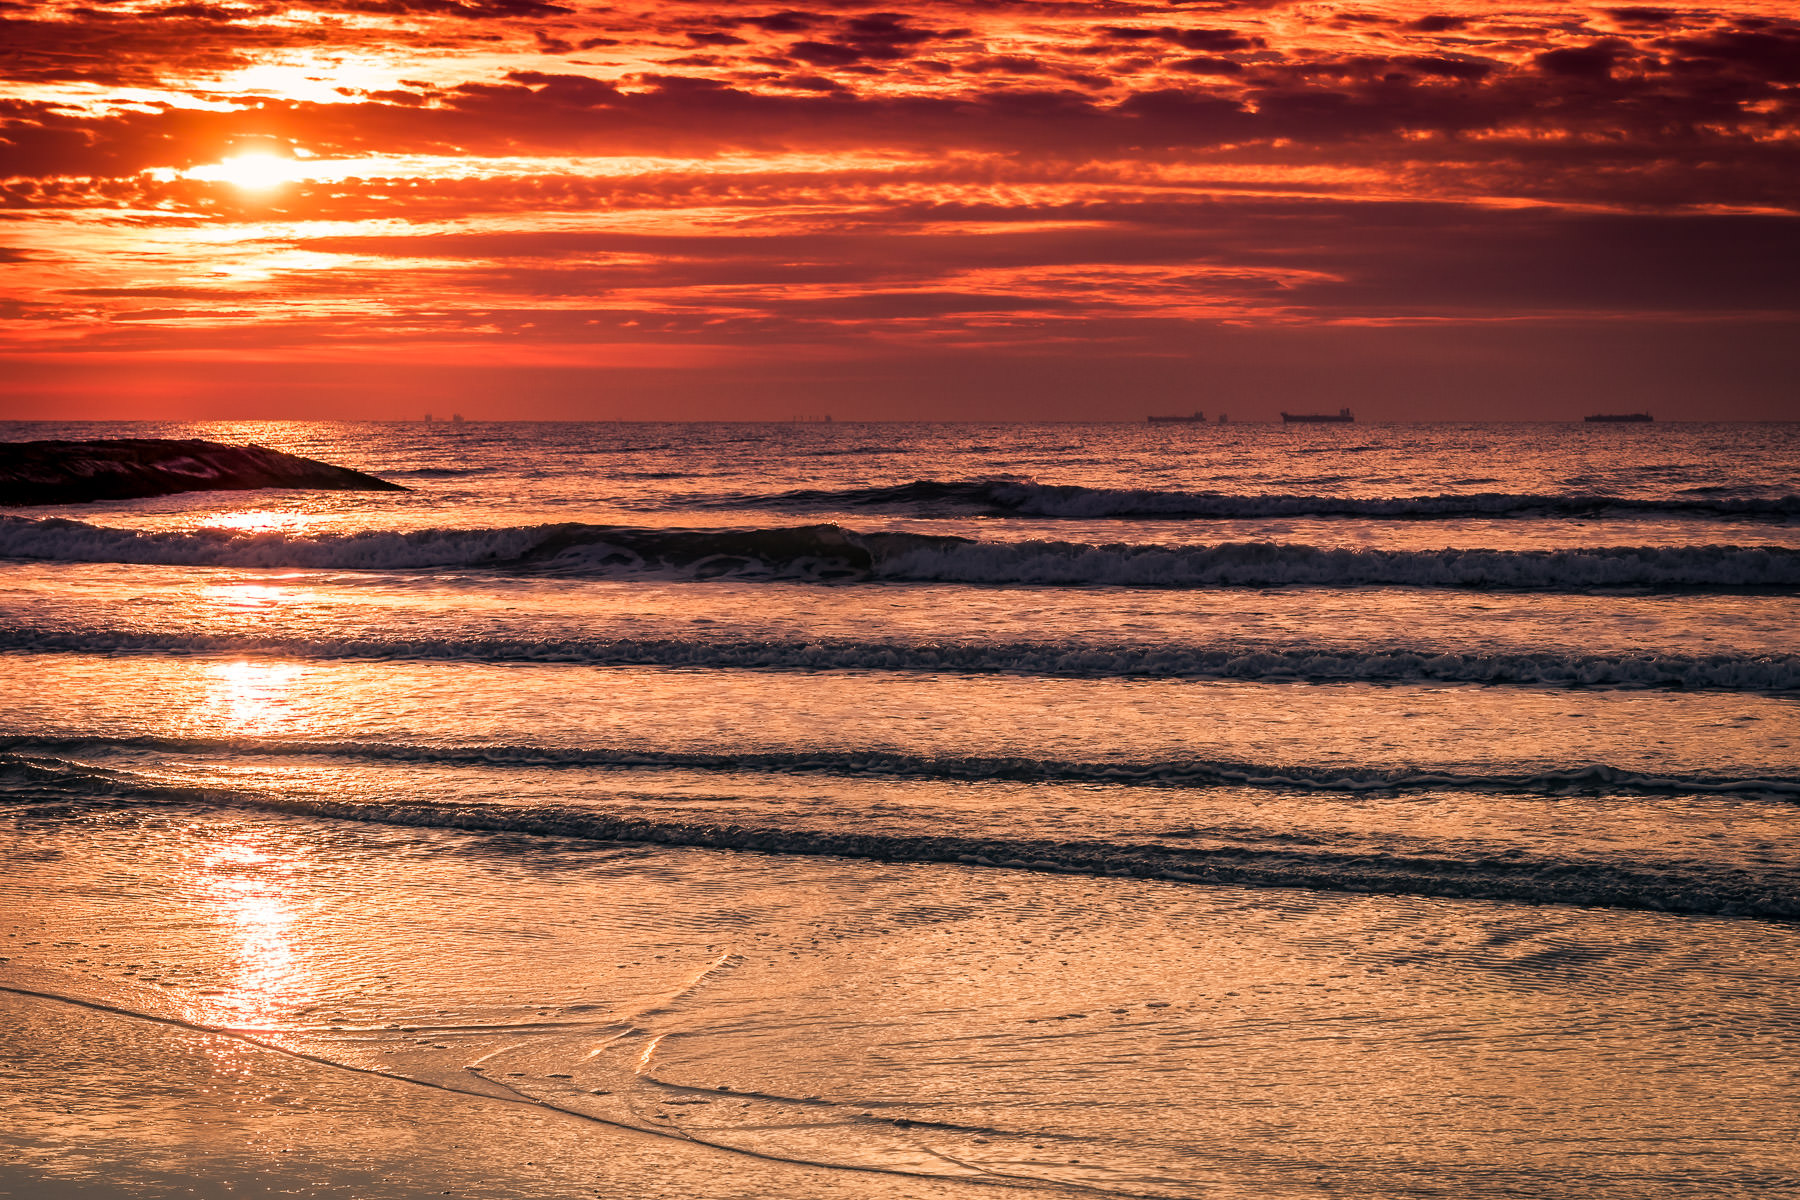 The sun rises on the Gulf of Mexico, as seen from a Galveston, Texas, beach.